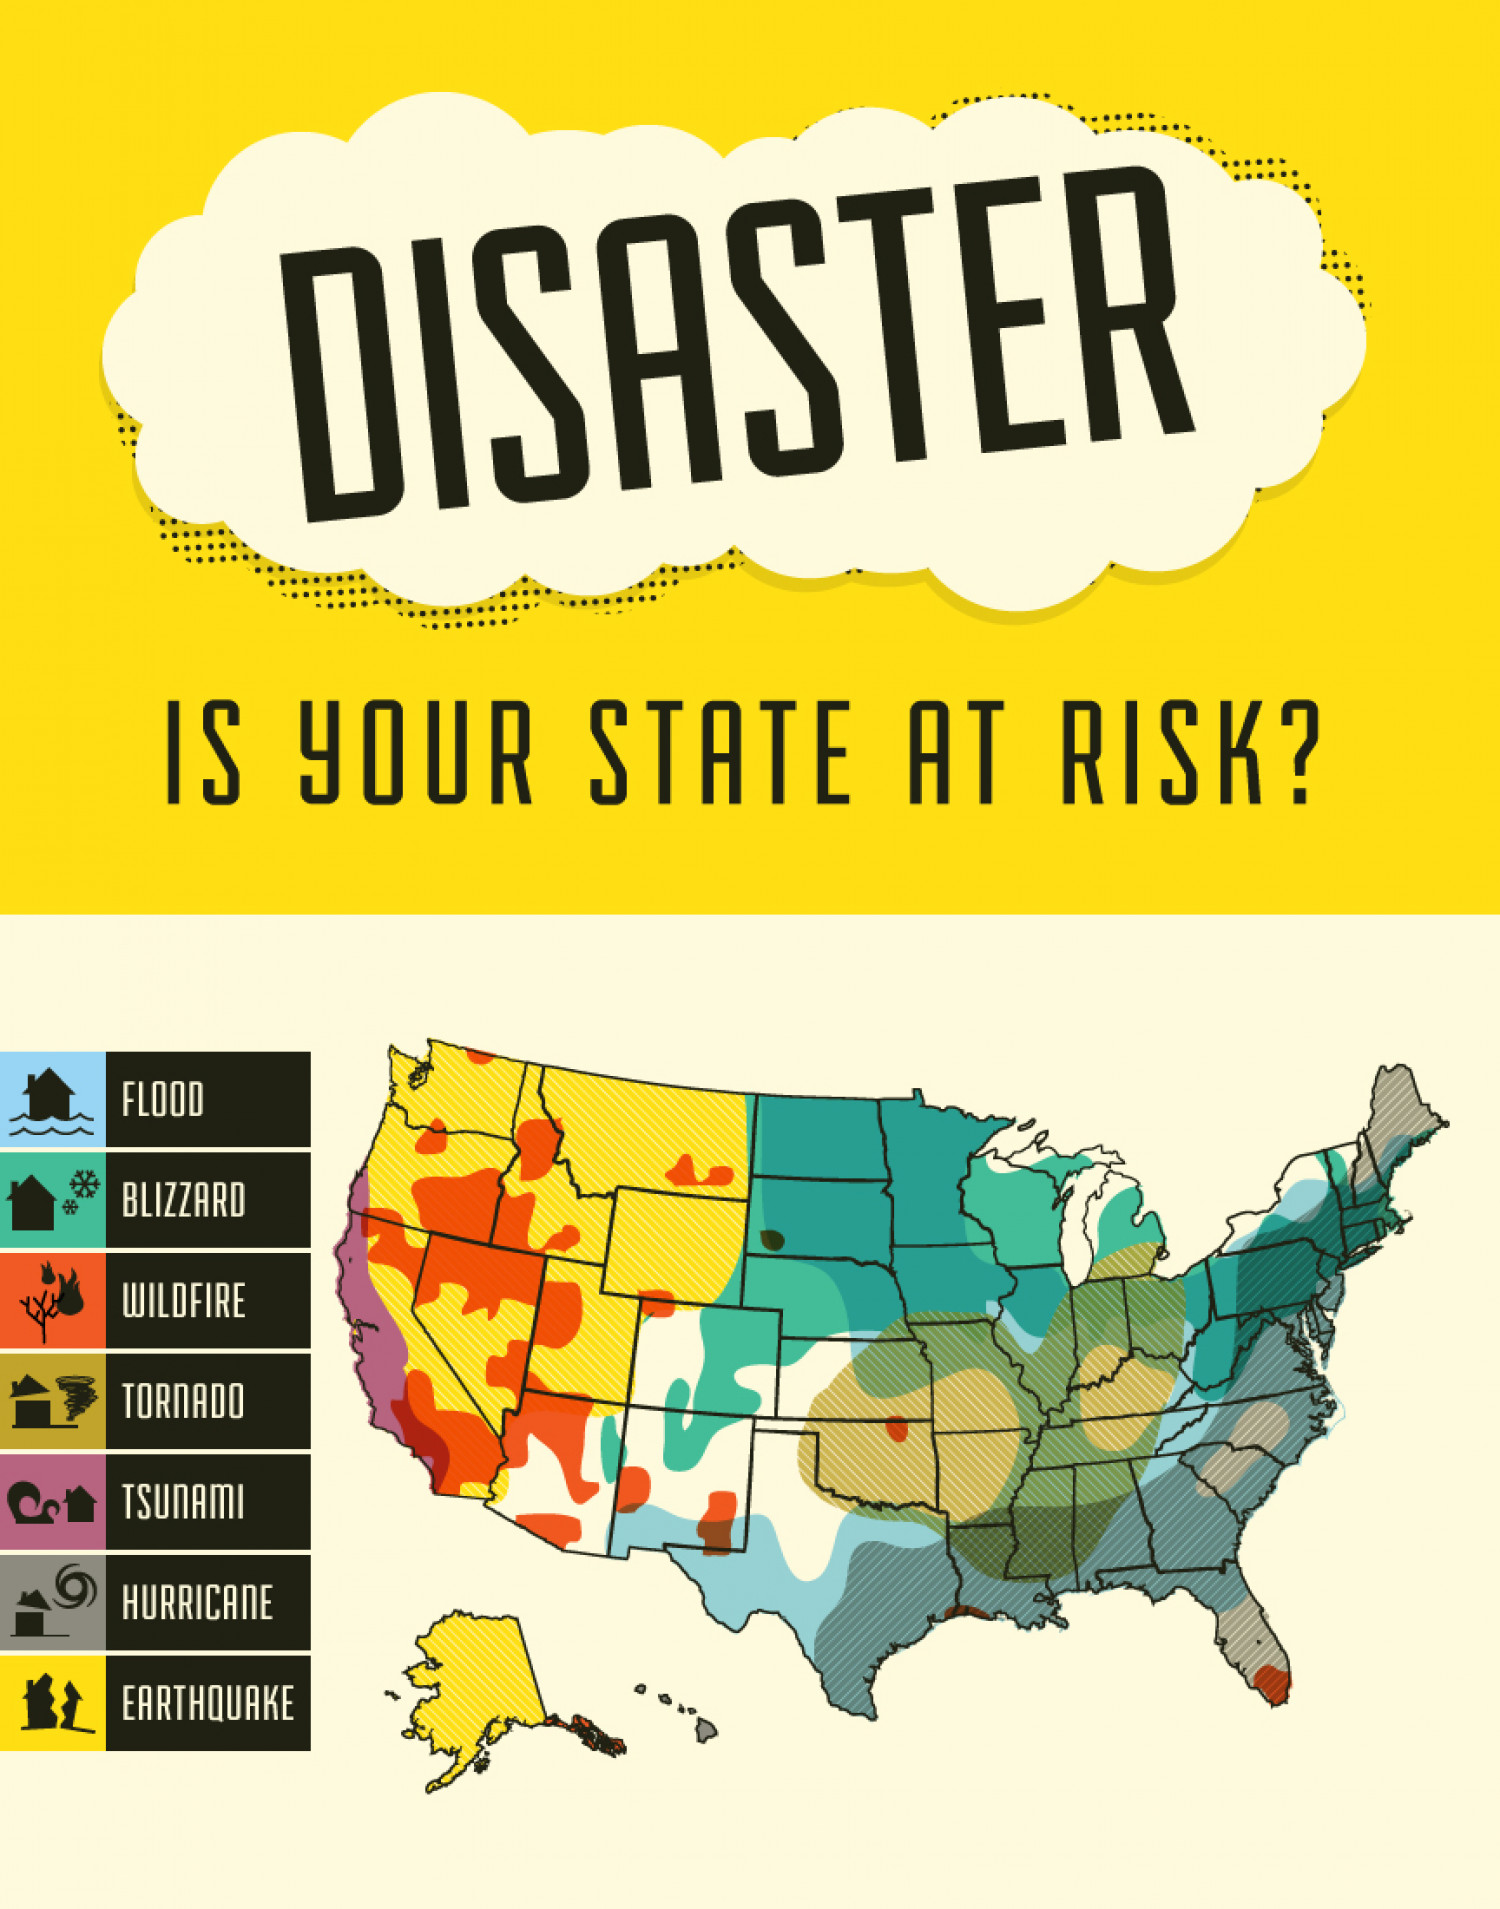 Disaster: Is your state at risk? Infographic